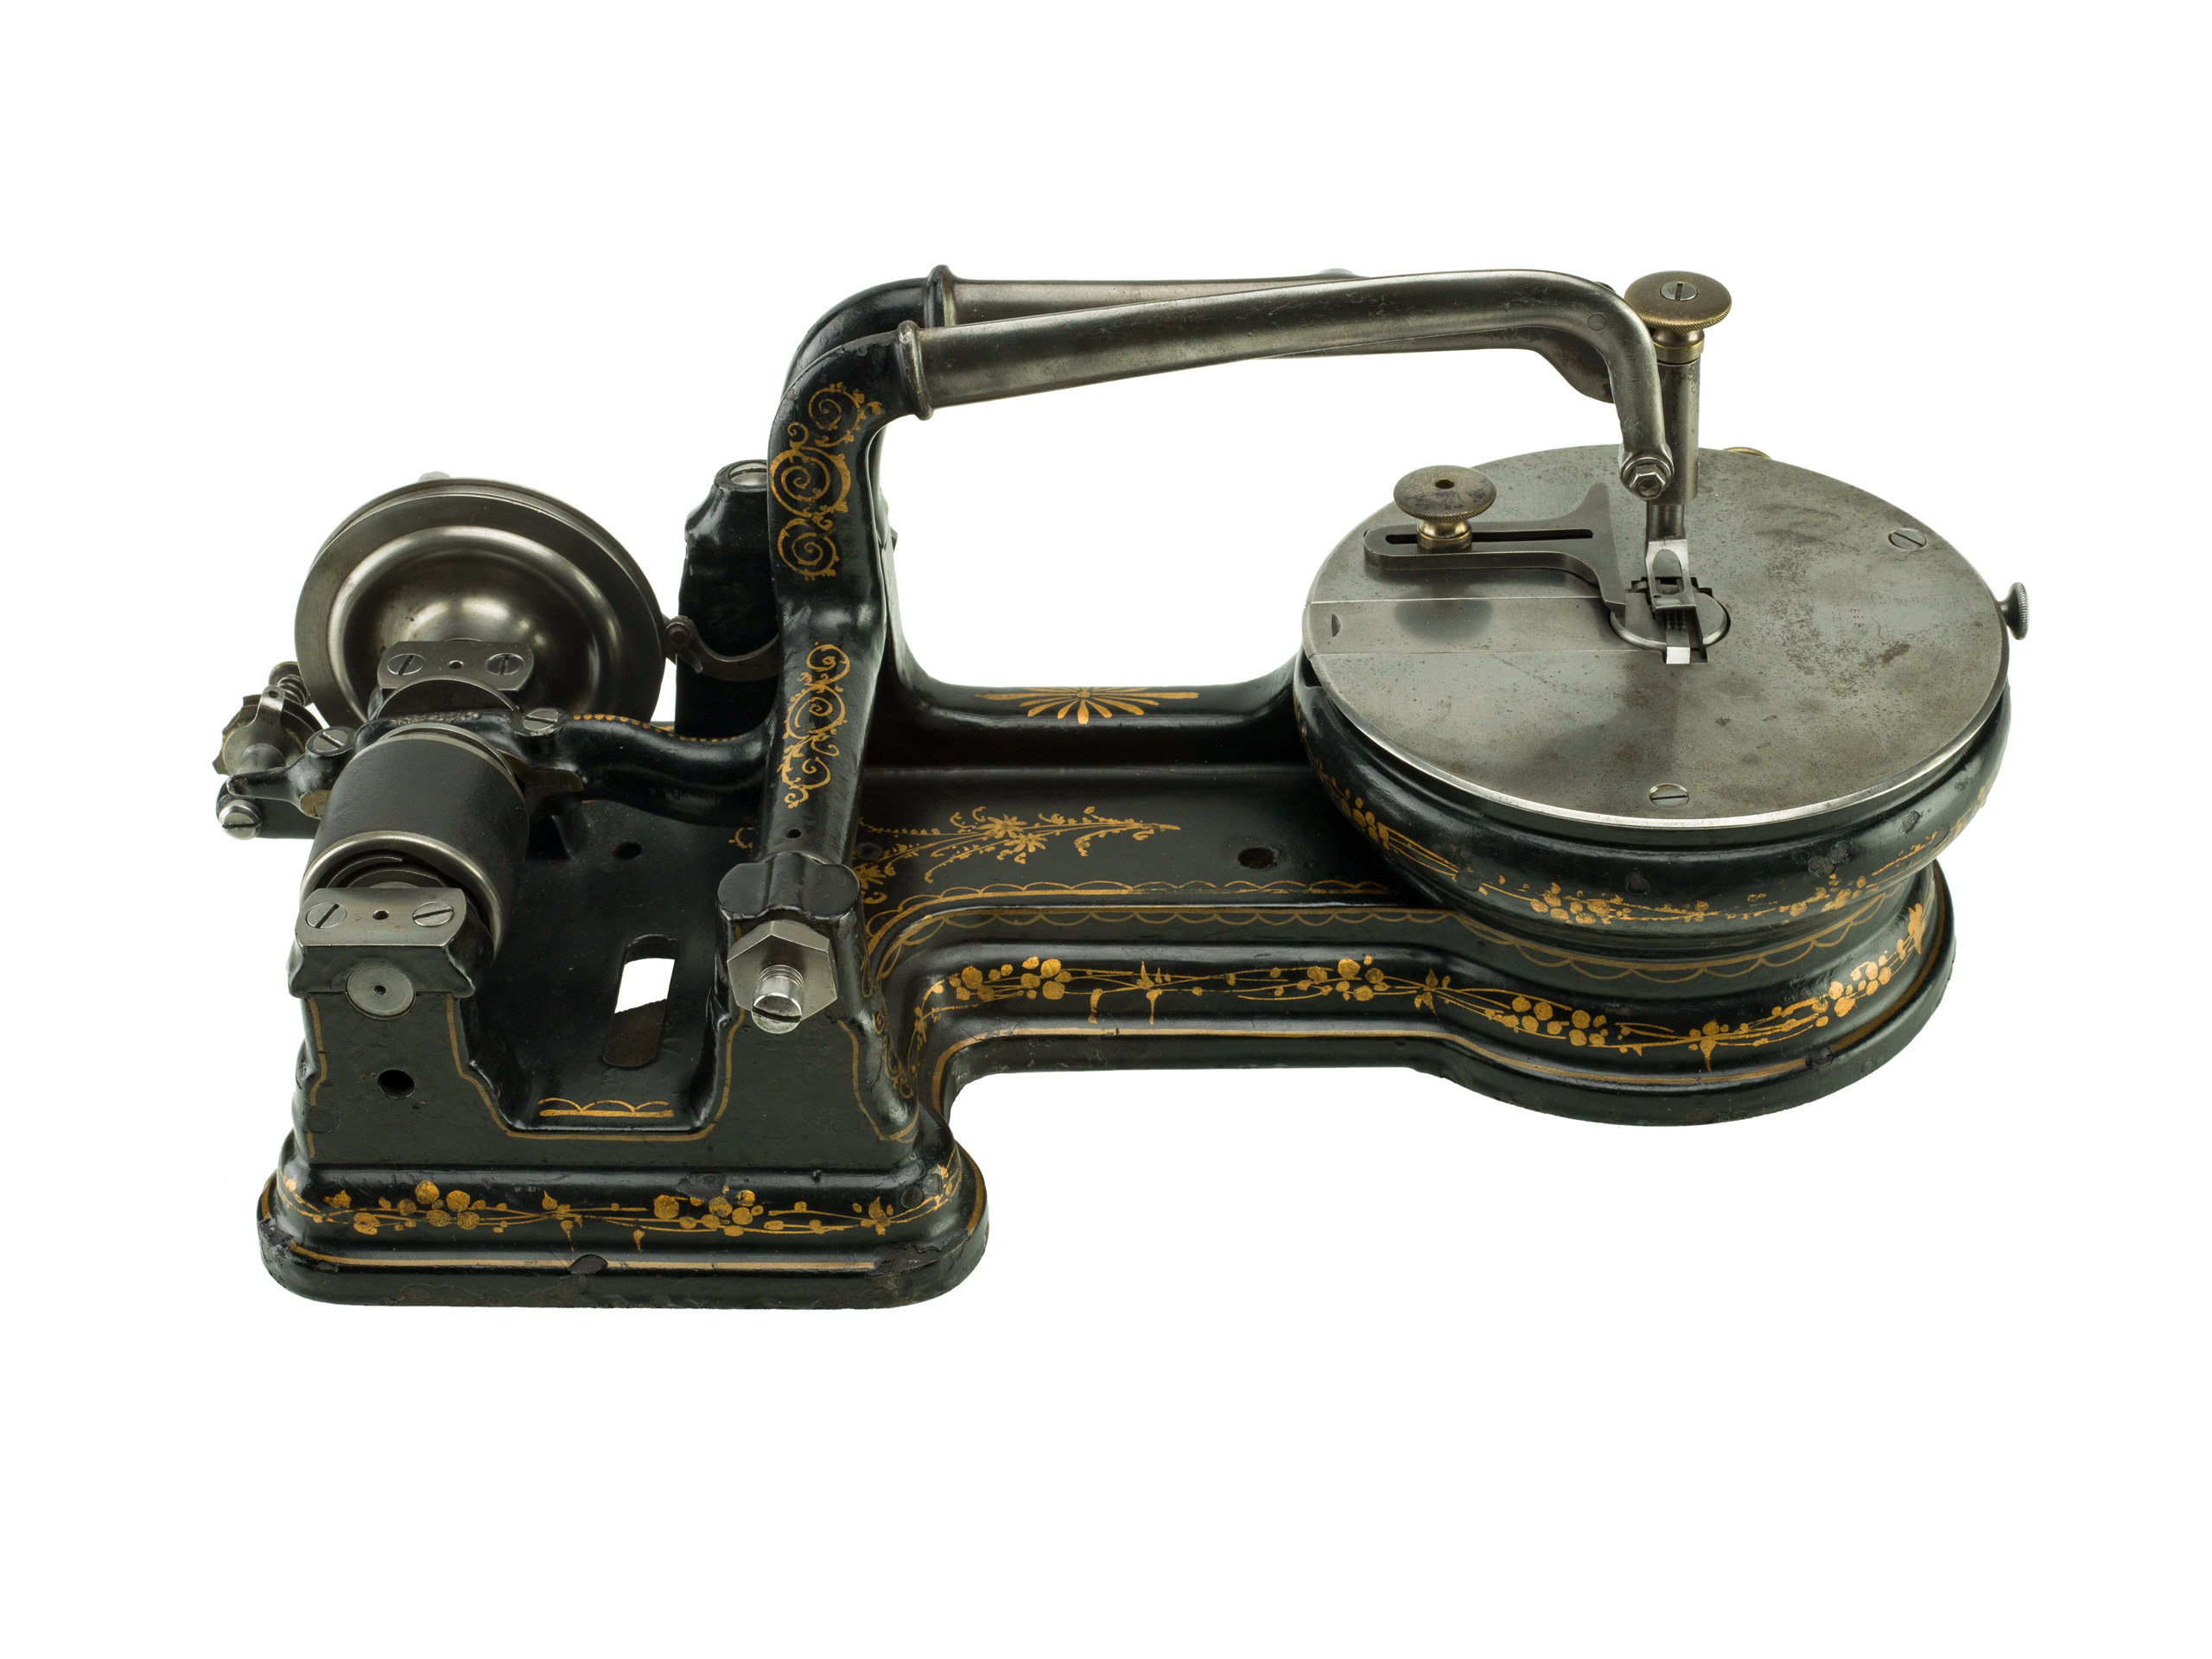 "Sewing Machine, 1873: Helen Blanchard, (Patent No. 141987).                                   This patent model for an improvement in sewing machines introduced the buttonhole stitch. Blanchard received some 28 patents, many having to do with sewing. She is best remembered for another overstitch sewing invention, the ""zigzag."""